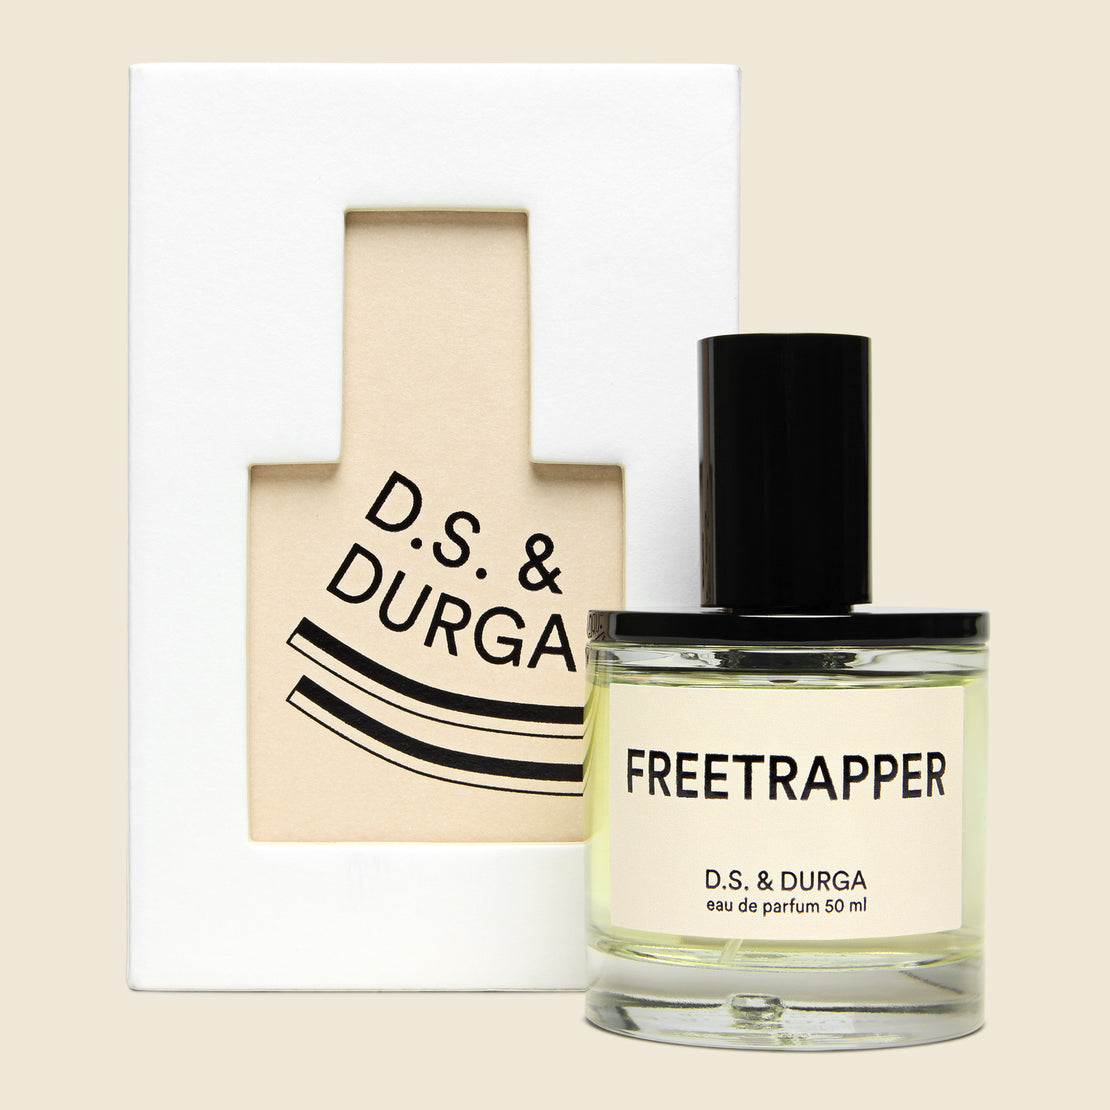 D.S. & Durga Freetrapper Cologne